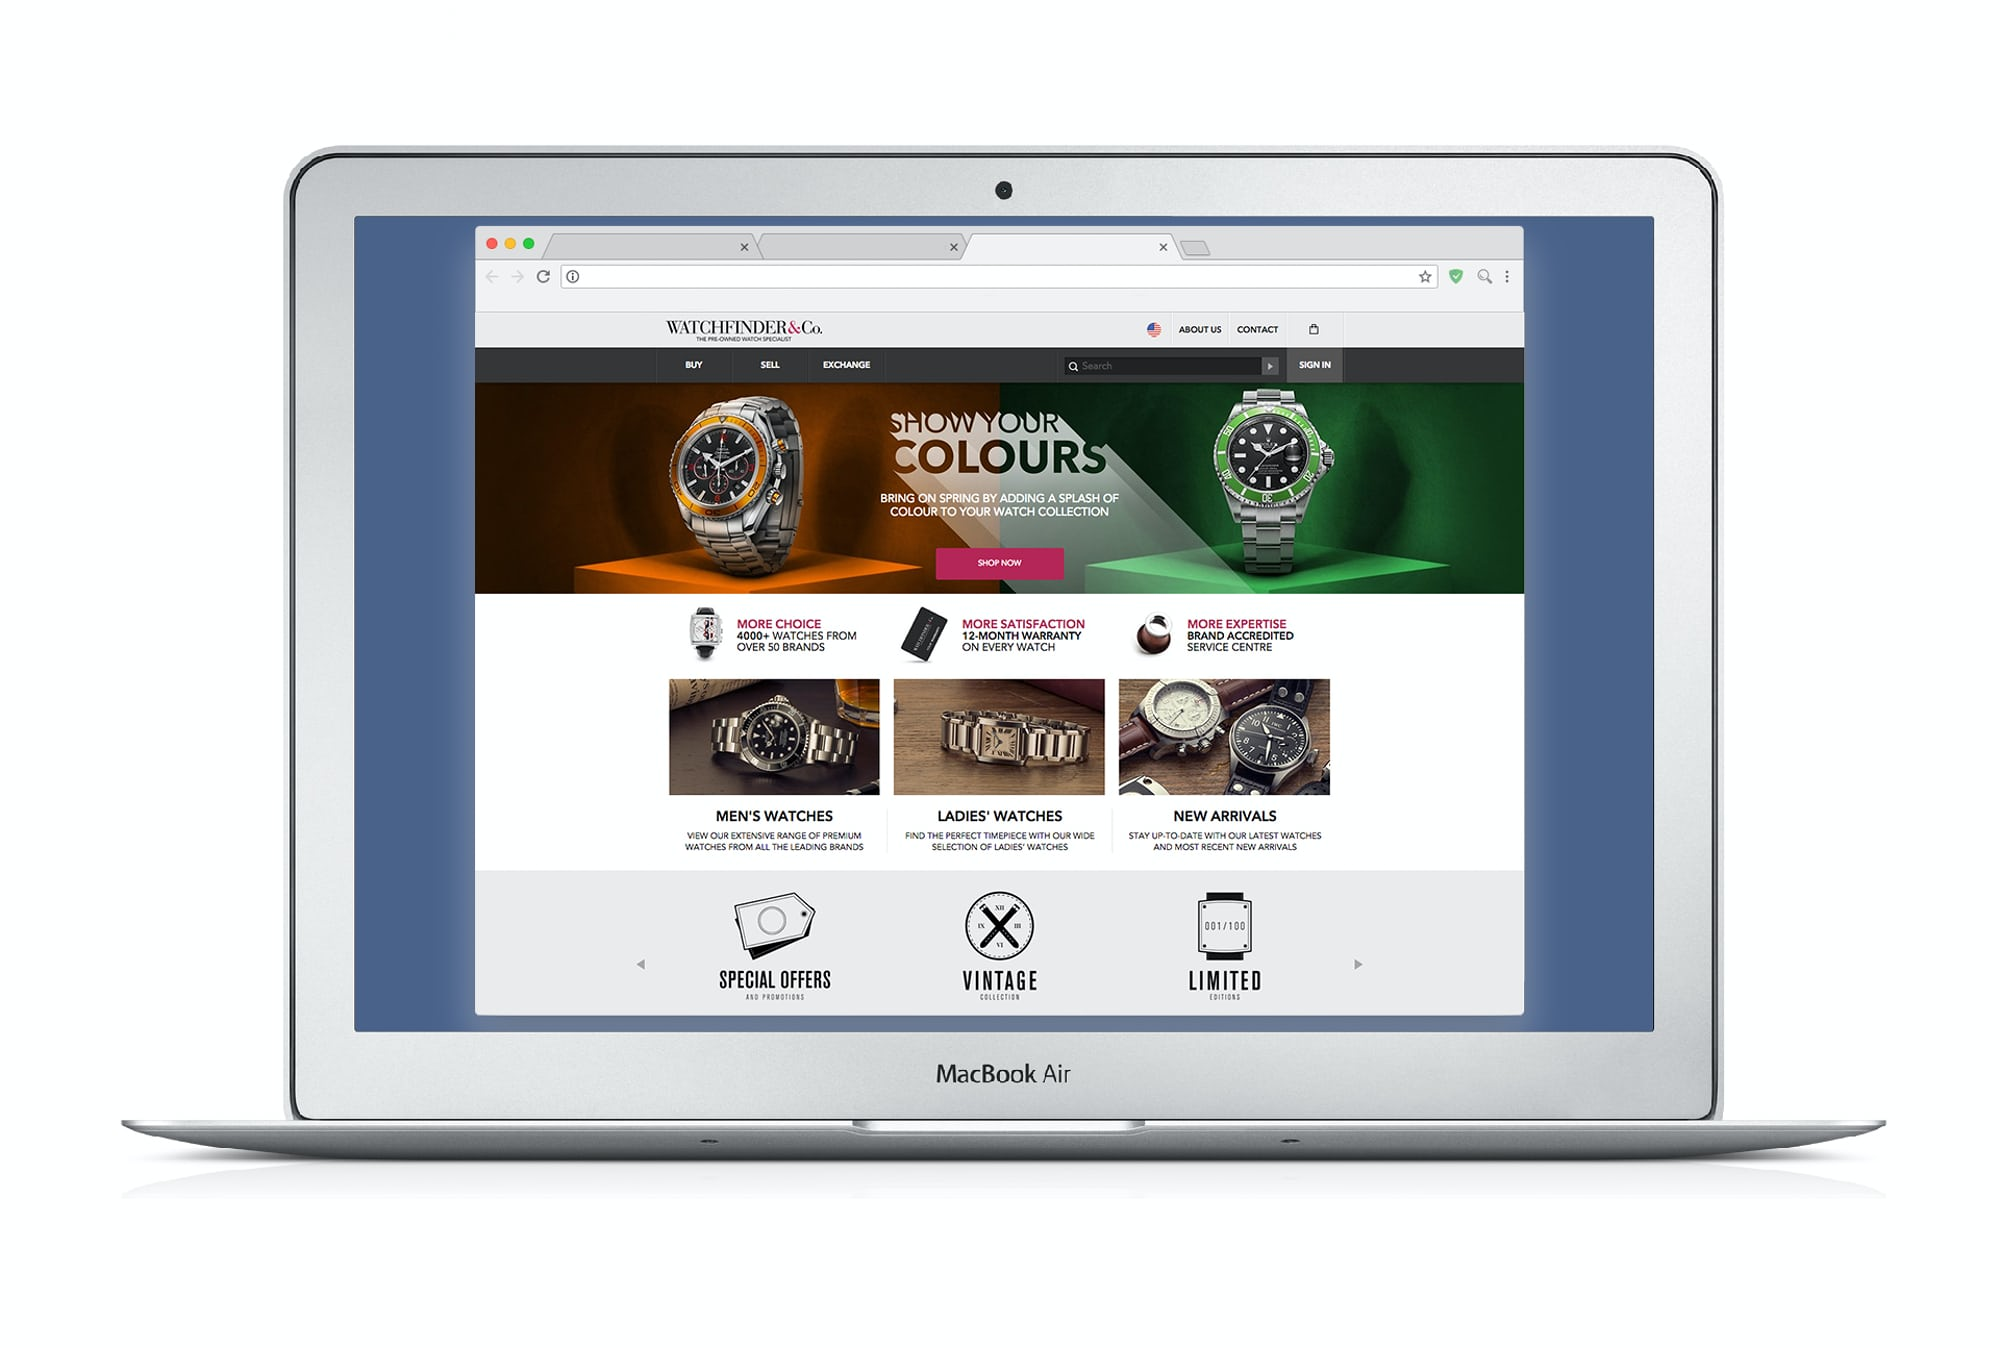 Business News: Richemont Retools For A Changing 21st Century Marketplace 1211112